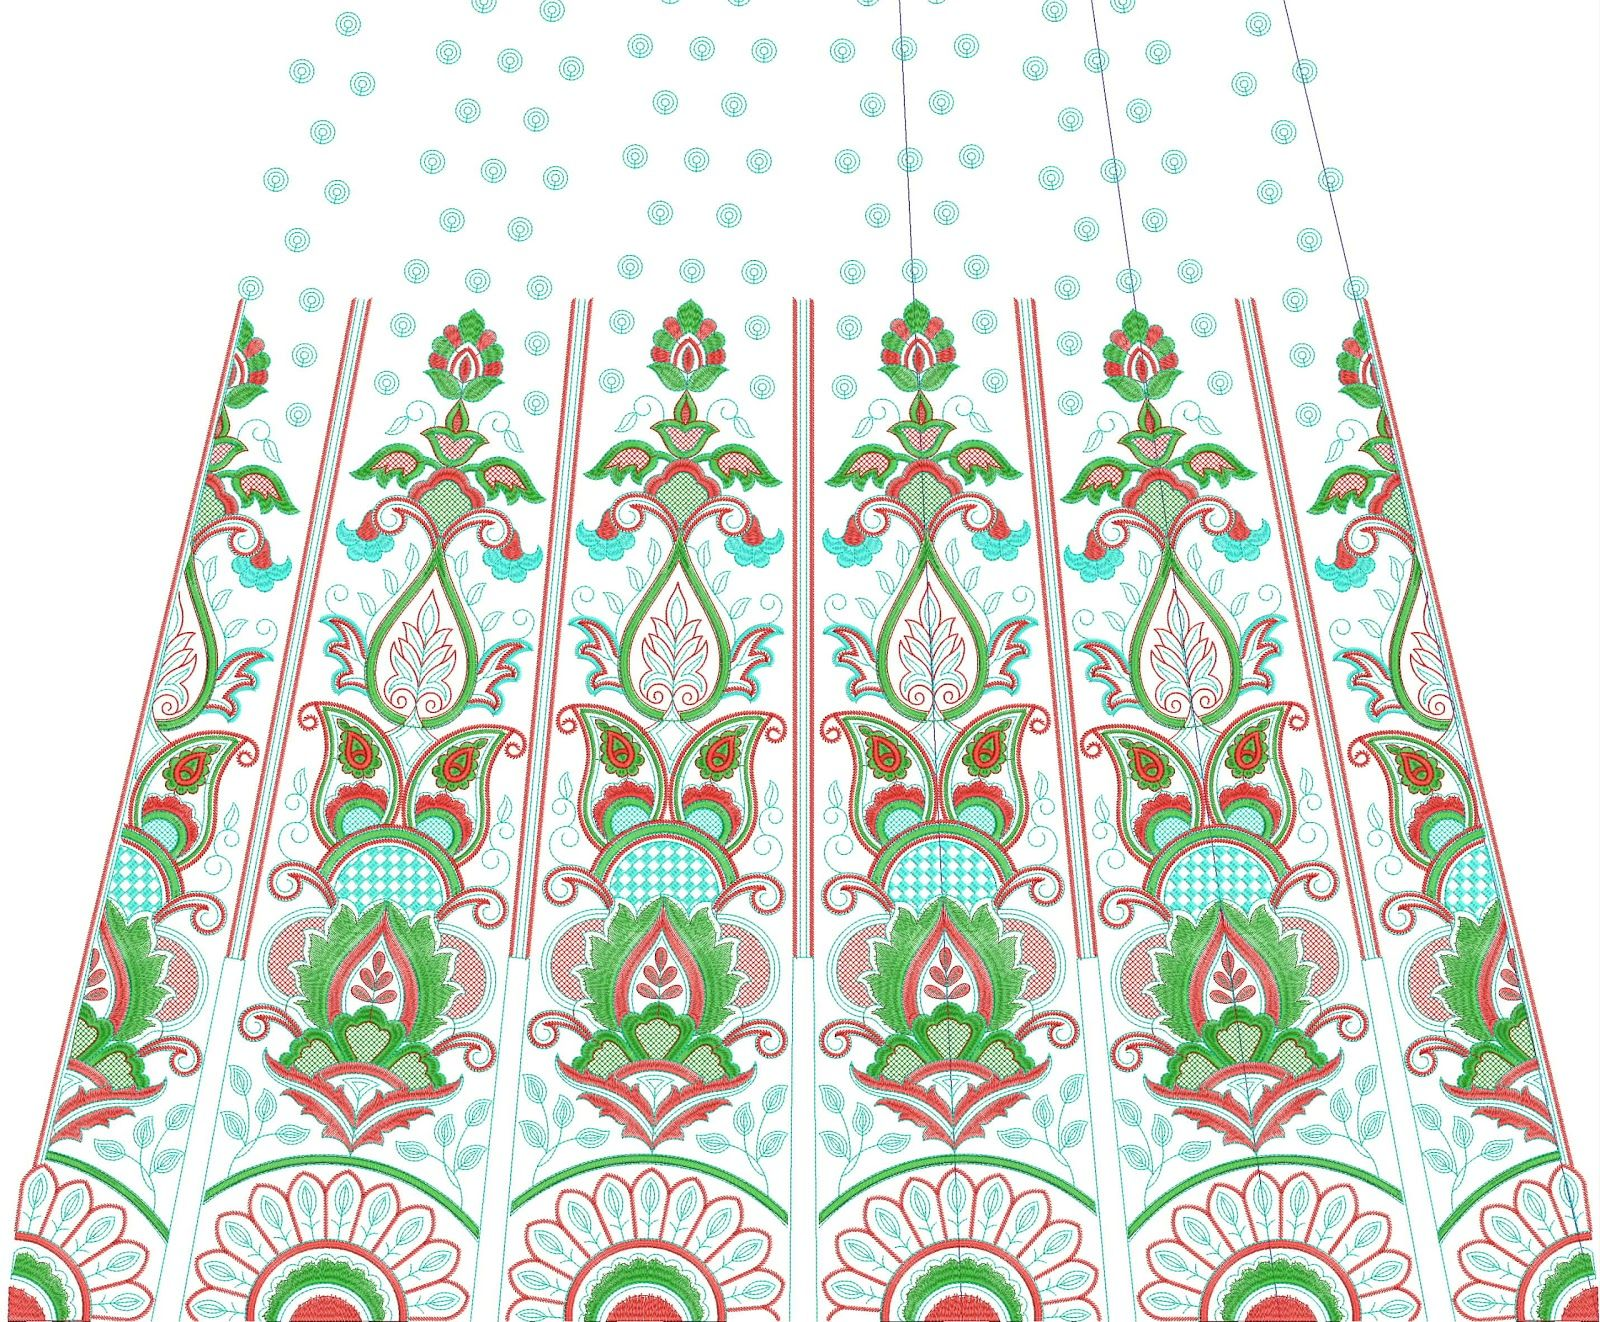 Embroidery designs embdesigntube choli embroidery designs for